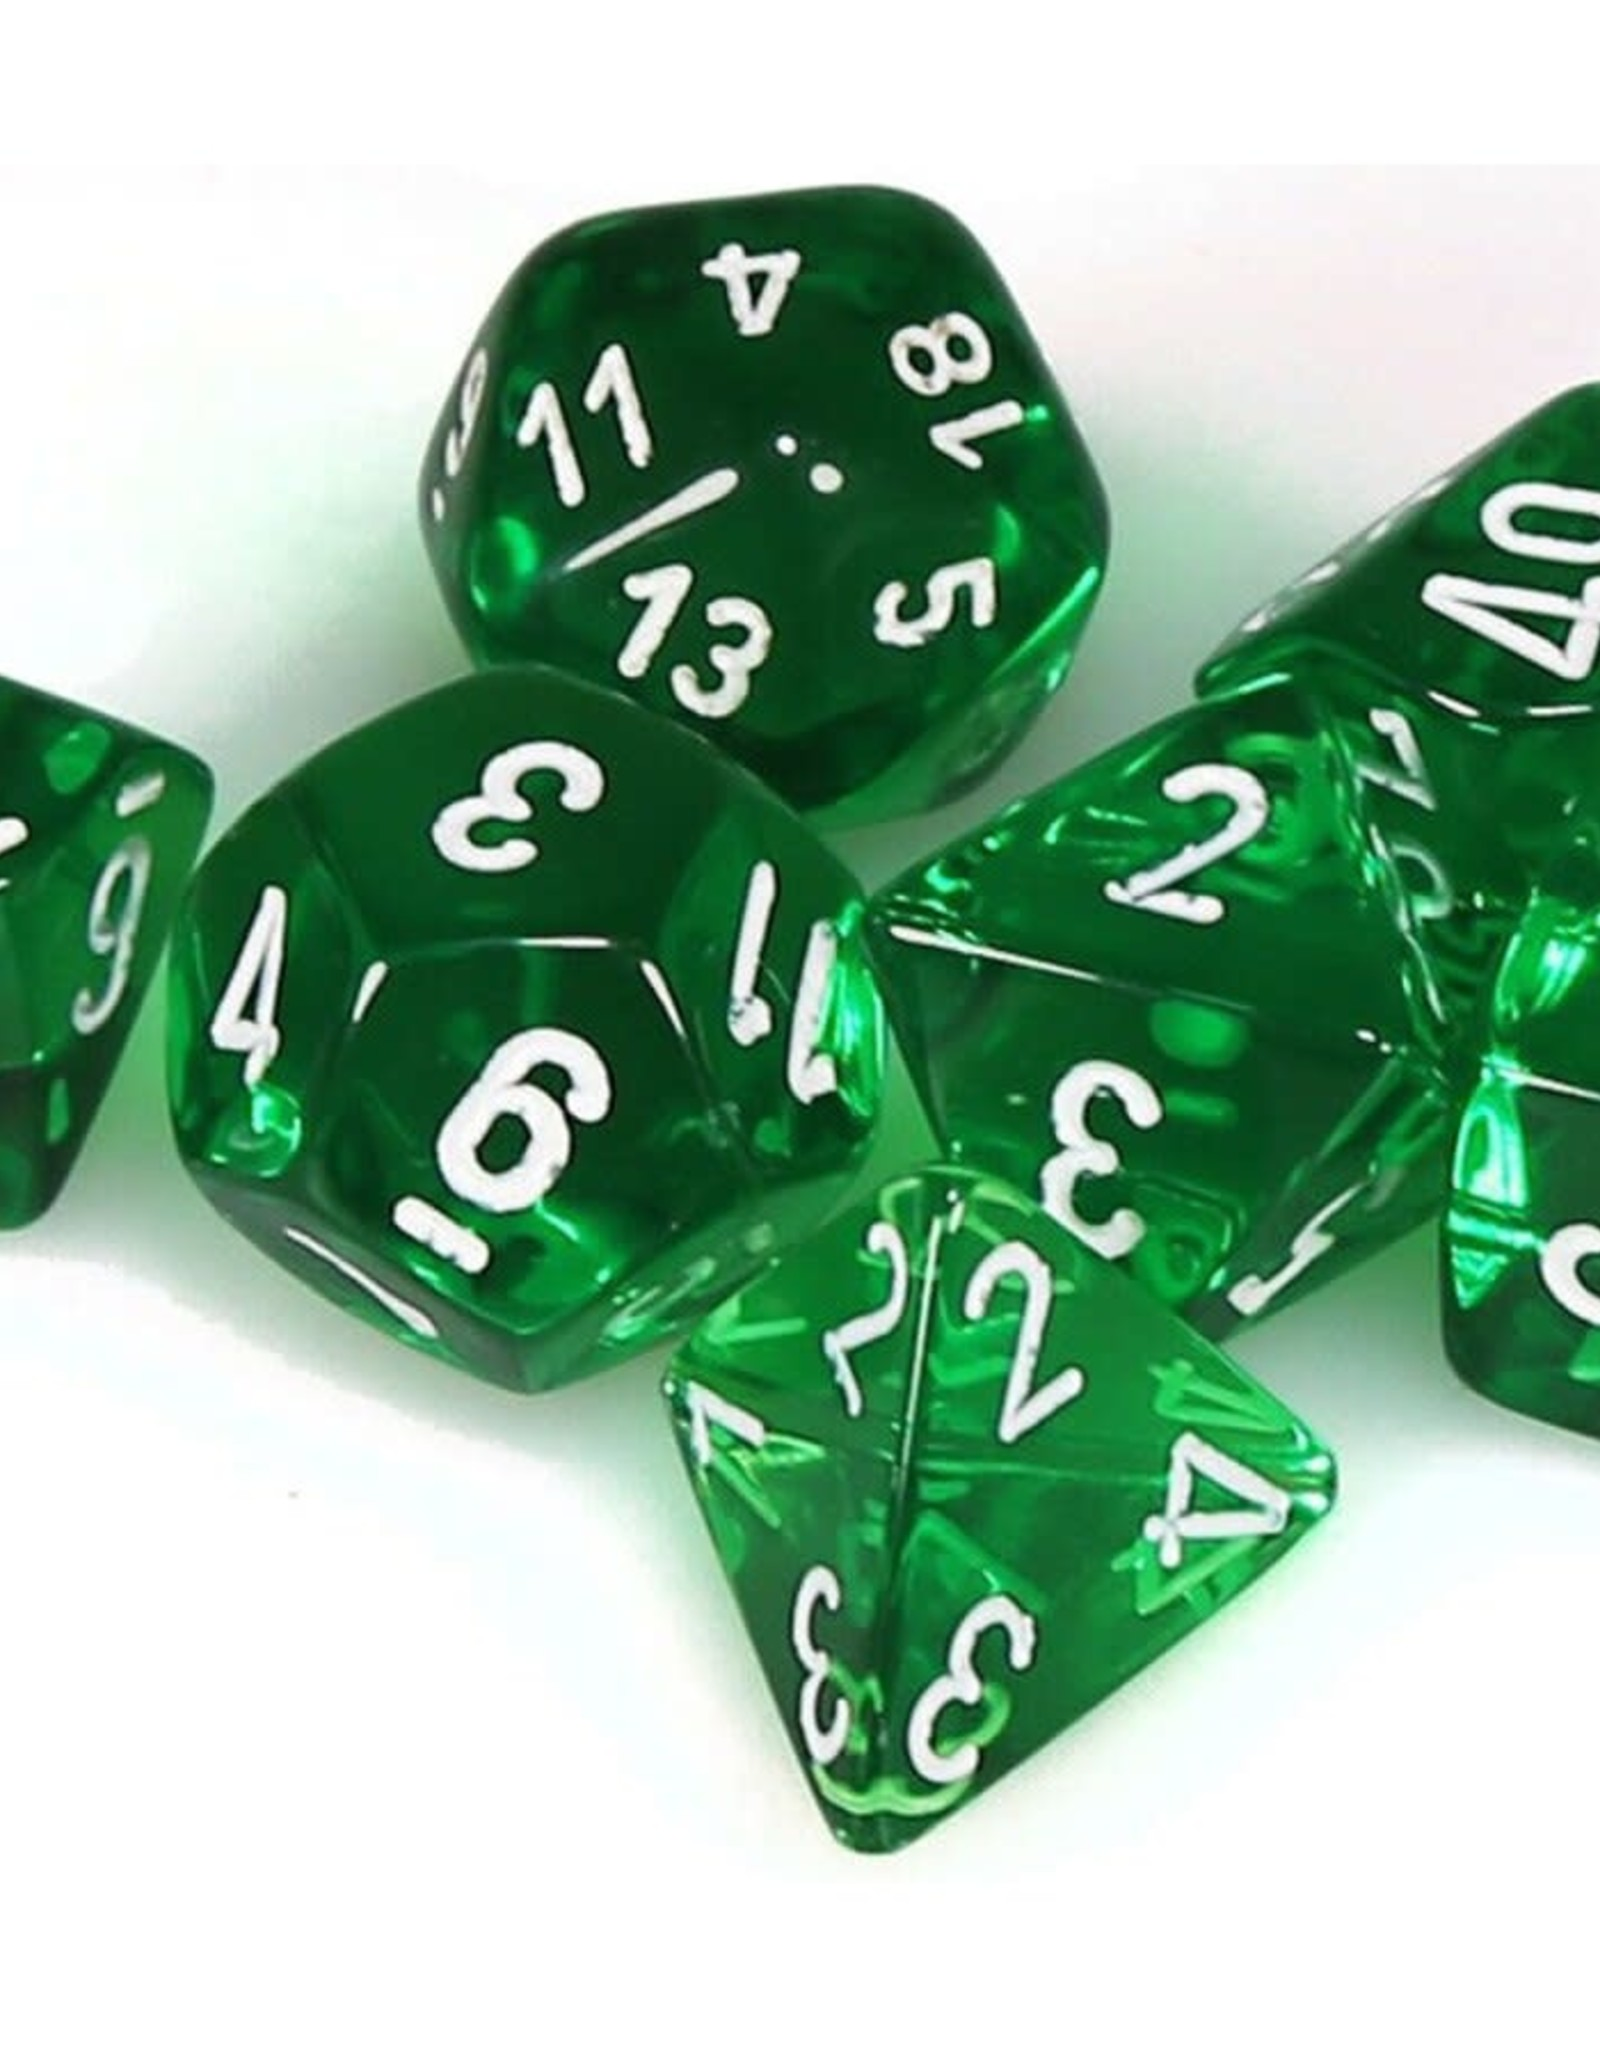 Chessex Dice Block 7ct. - Trans Green/White